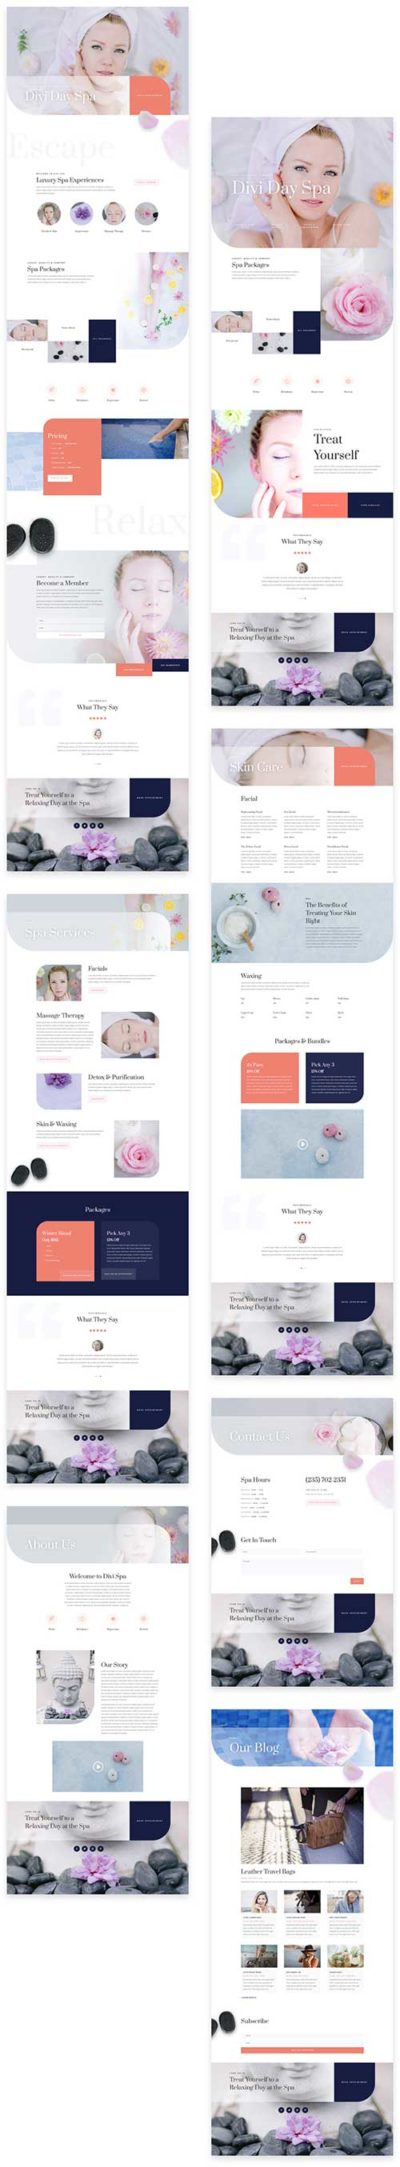 divi day spa layouts